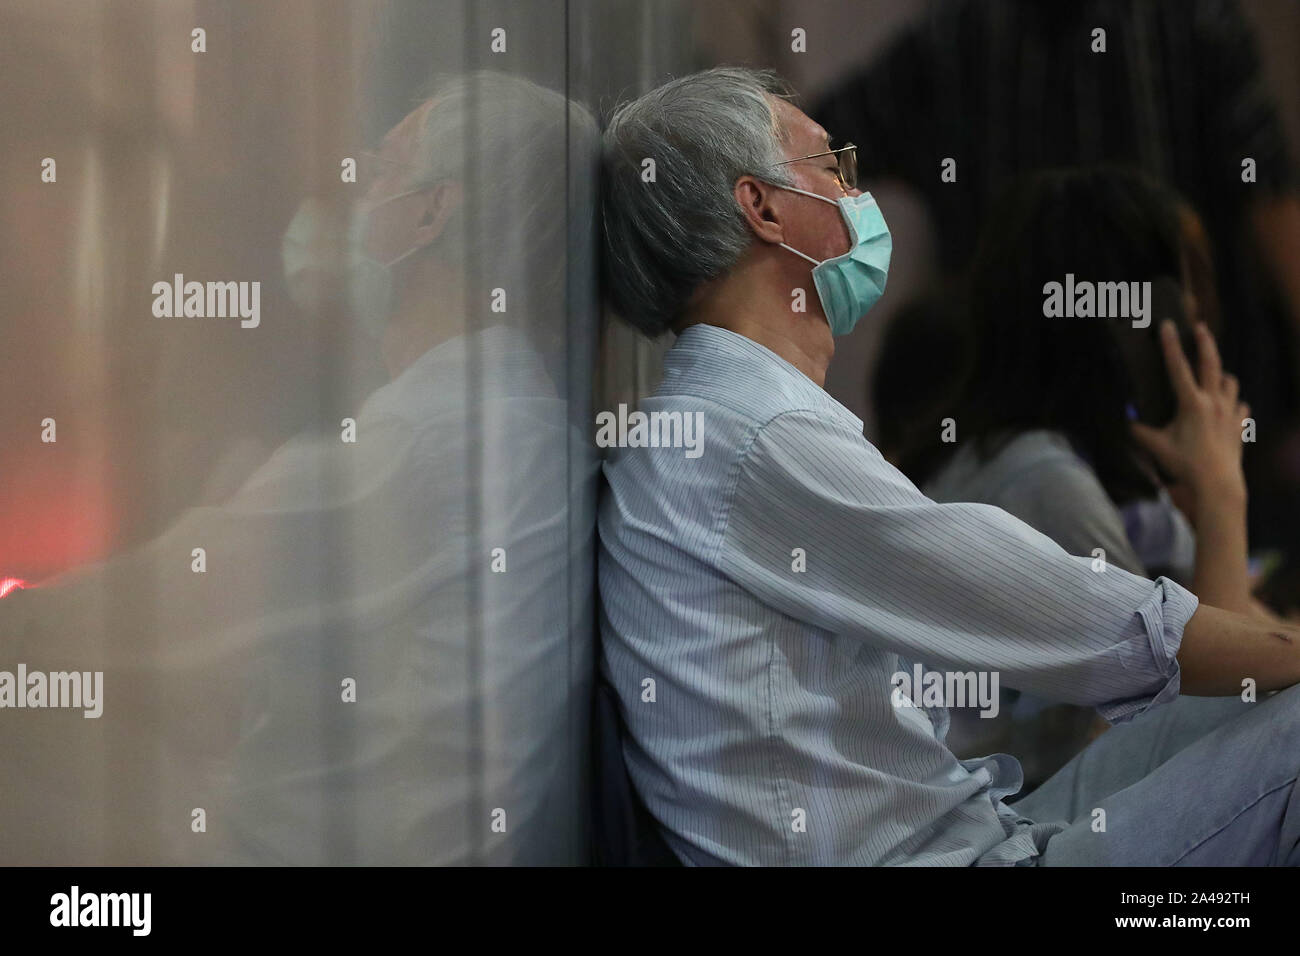 Hong Kong, China. 12th Oct, 2019. Member of the sliver hair sleeping outside police headquarters during the protests. Hong Kong Protests continue for the 5th month. More demonstrations and rallies have taken place including the silver hair, a 48 hours strike of sitting peacefully outside police headquarters. Credit: SOPA Images Limited/Alamy Live News Stock Photo